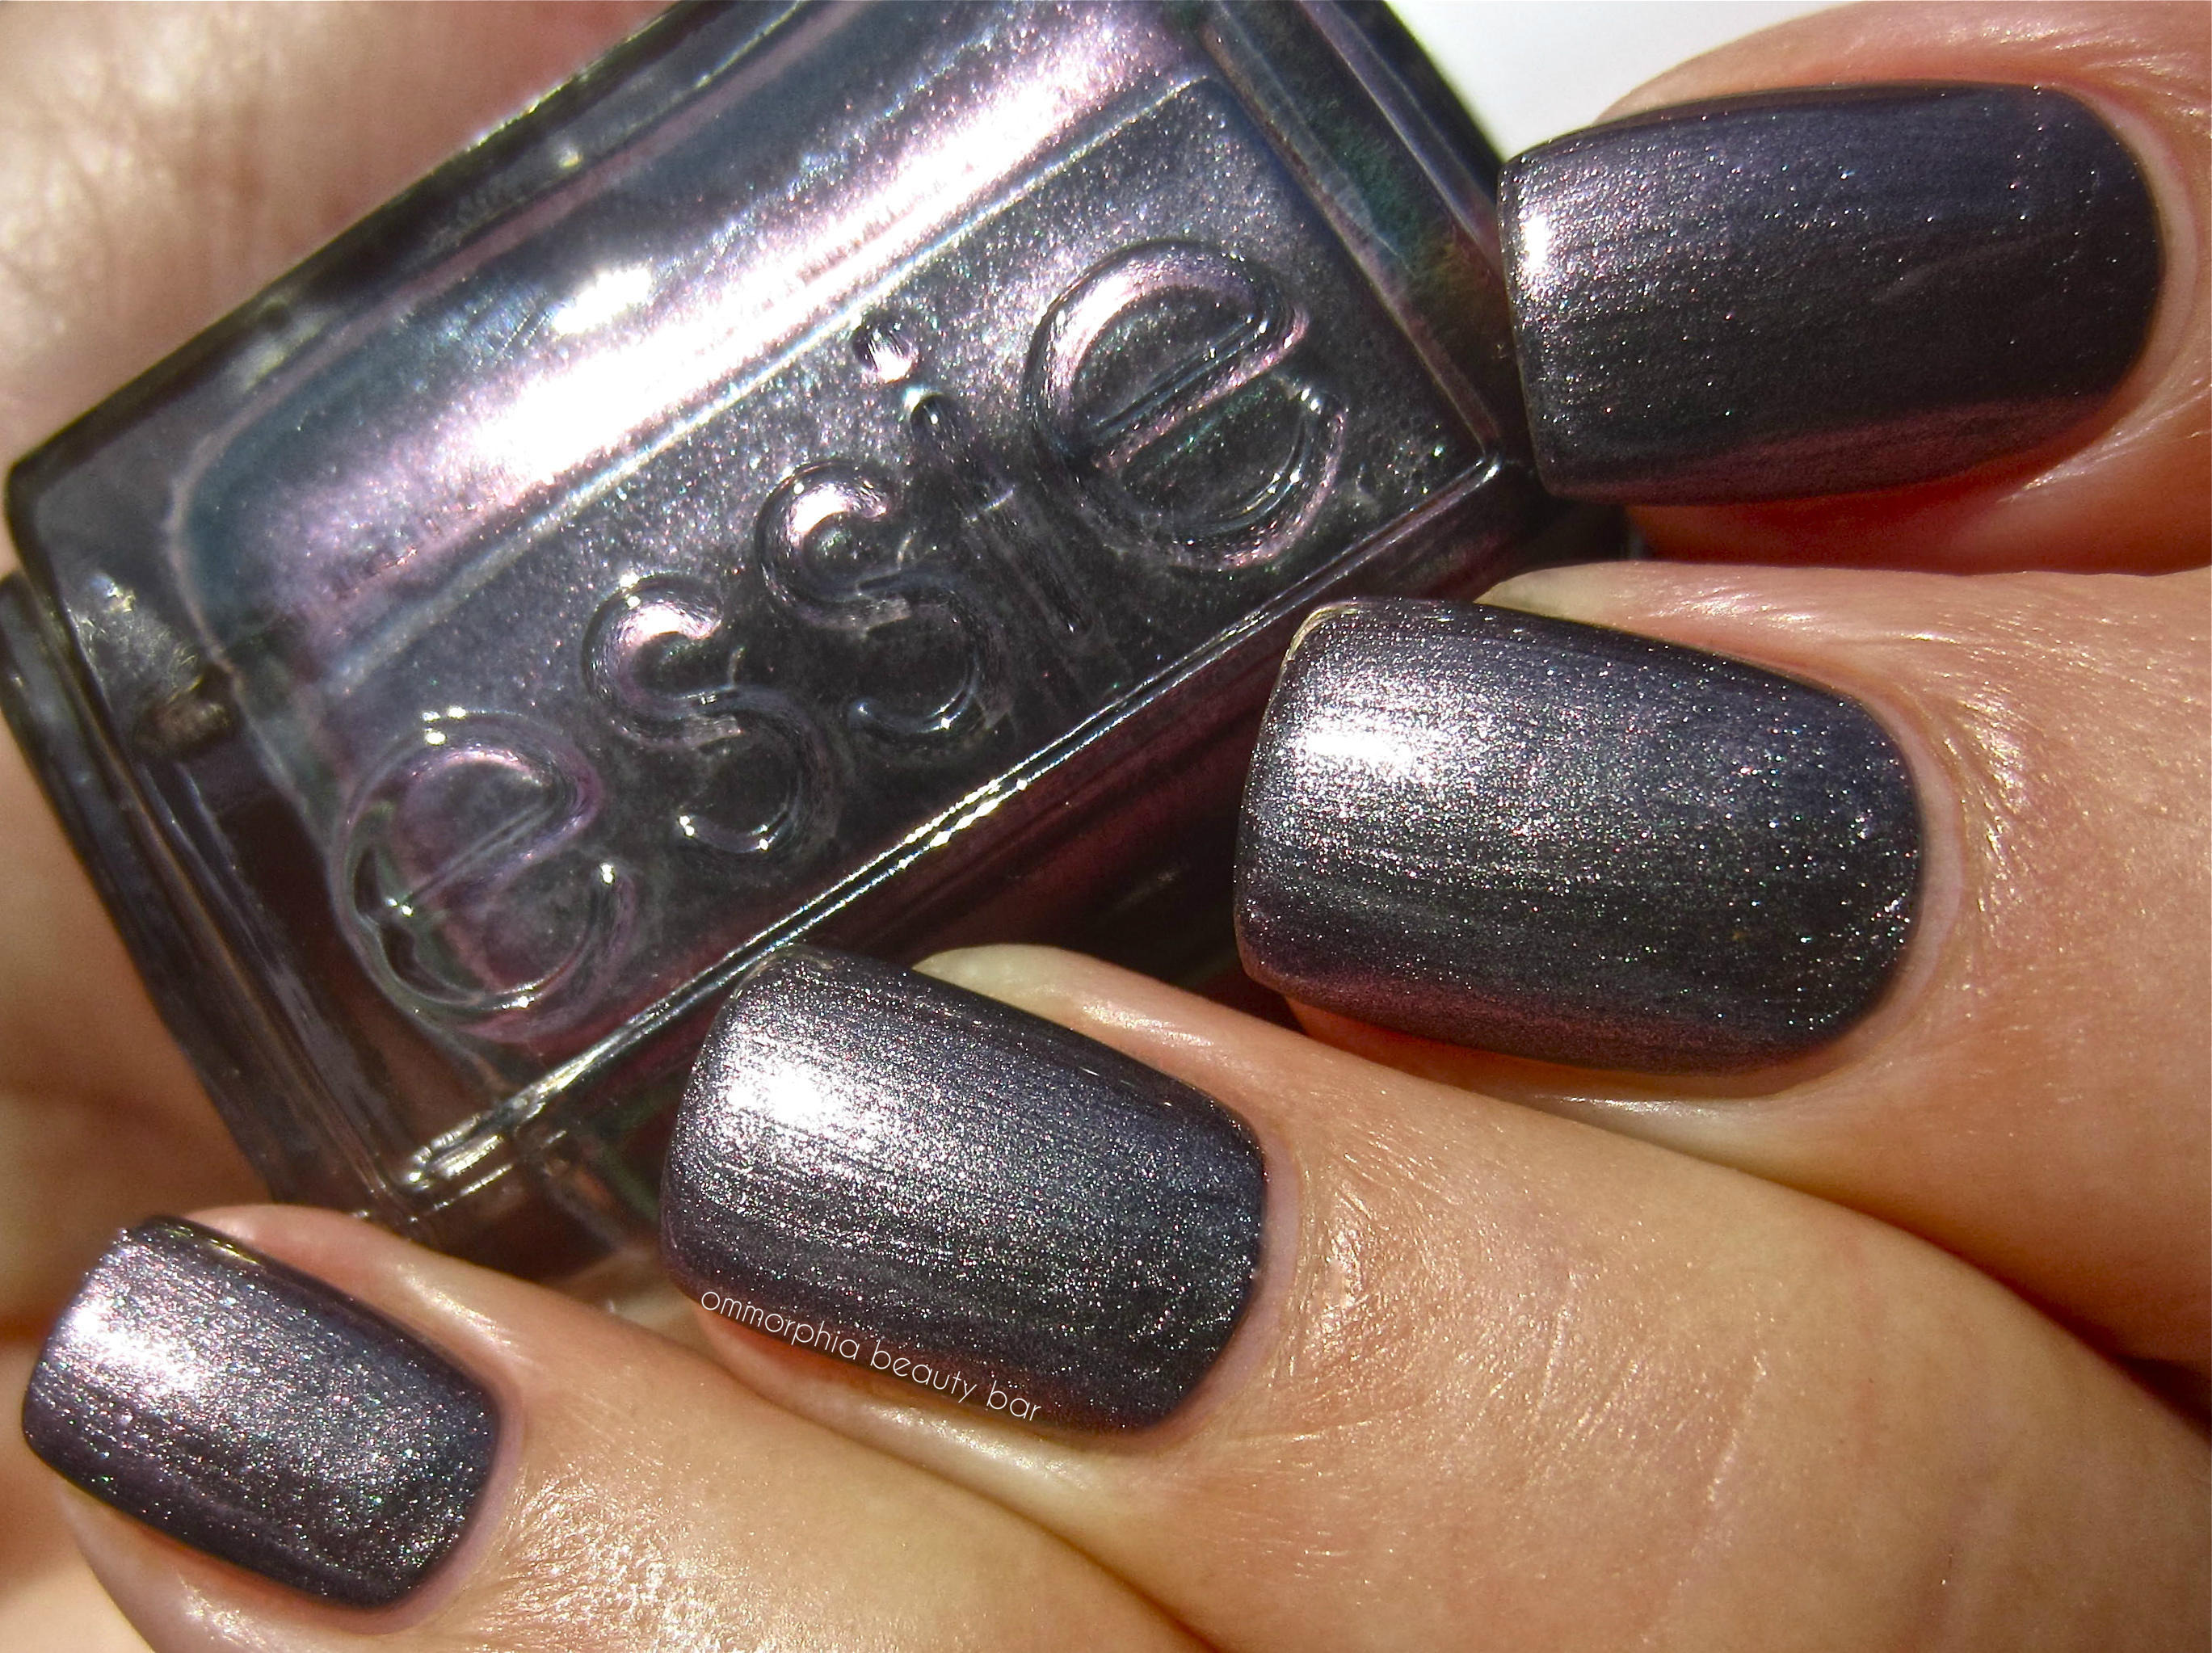 Essie The Lace Is On swatch | ommorphia beauty bar